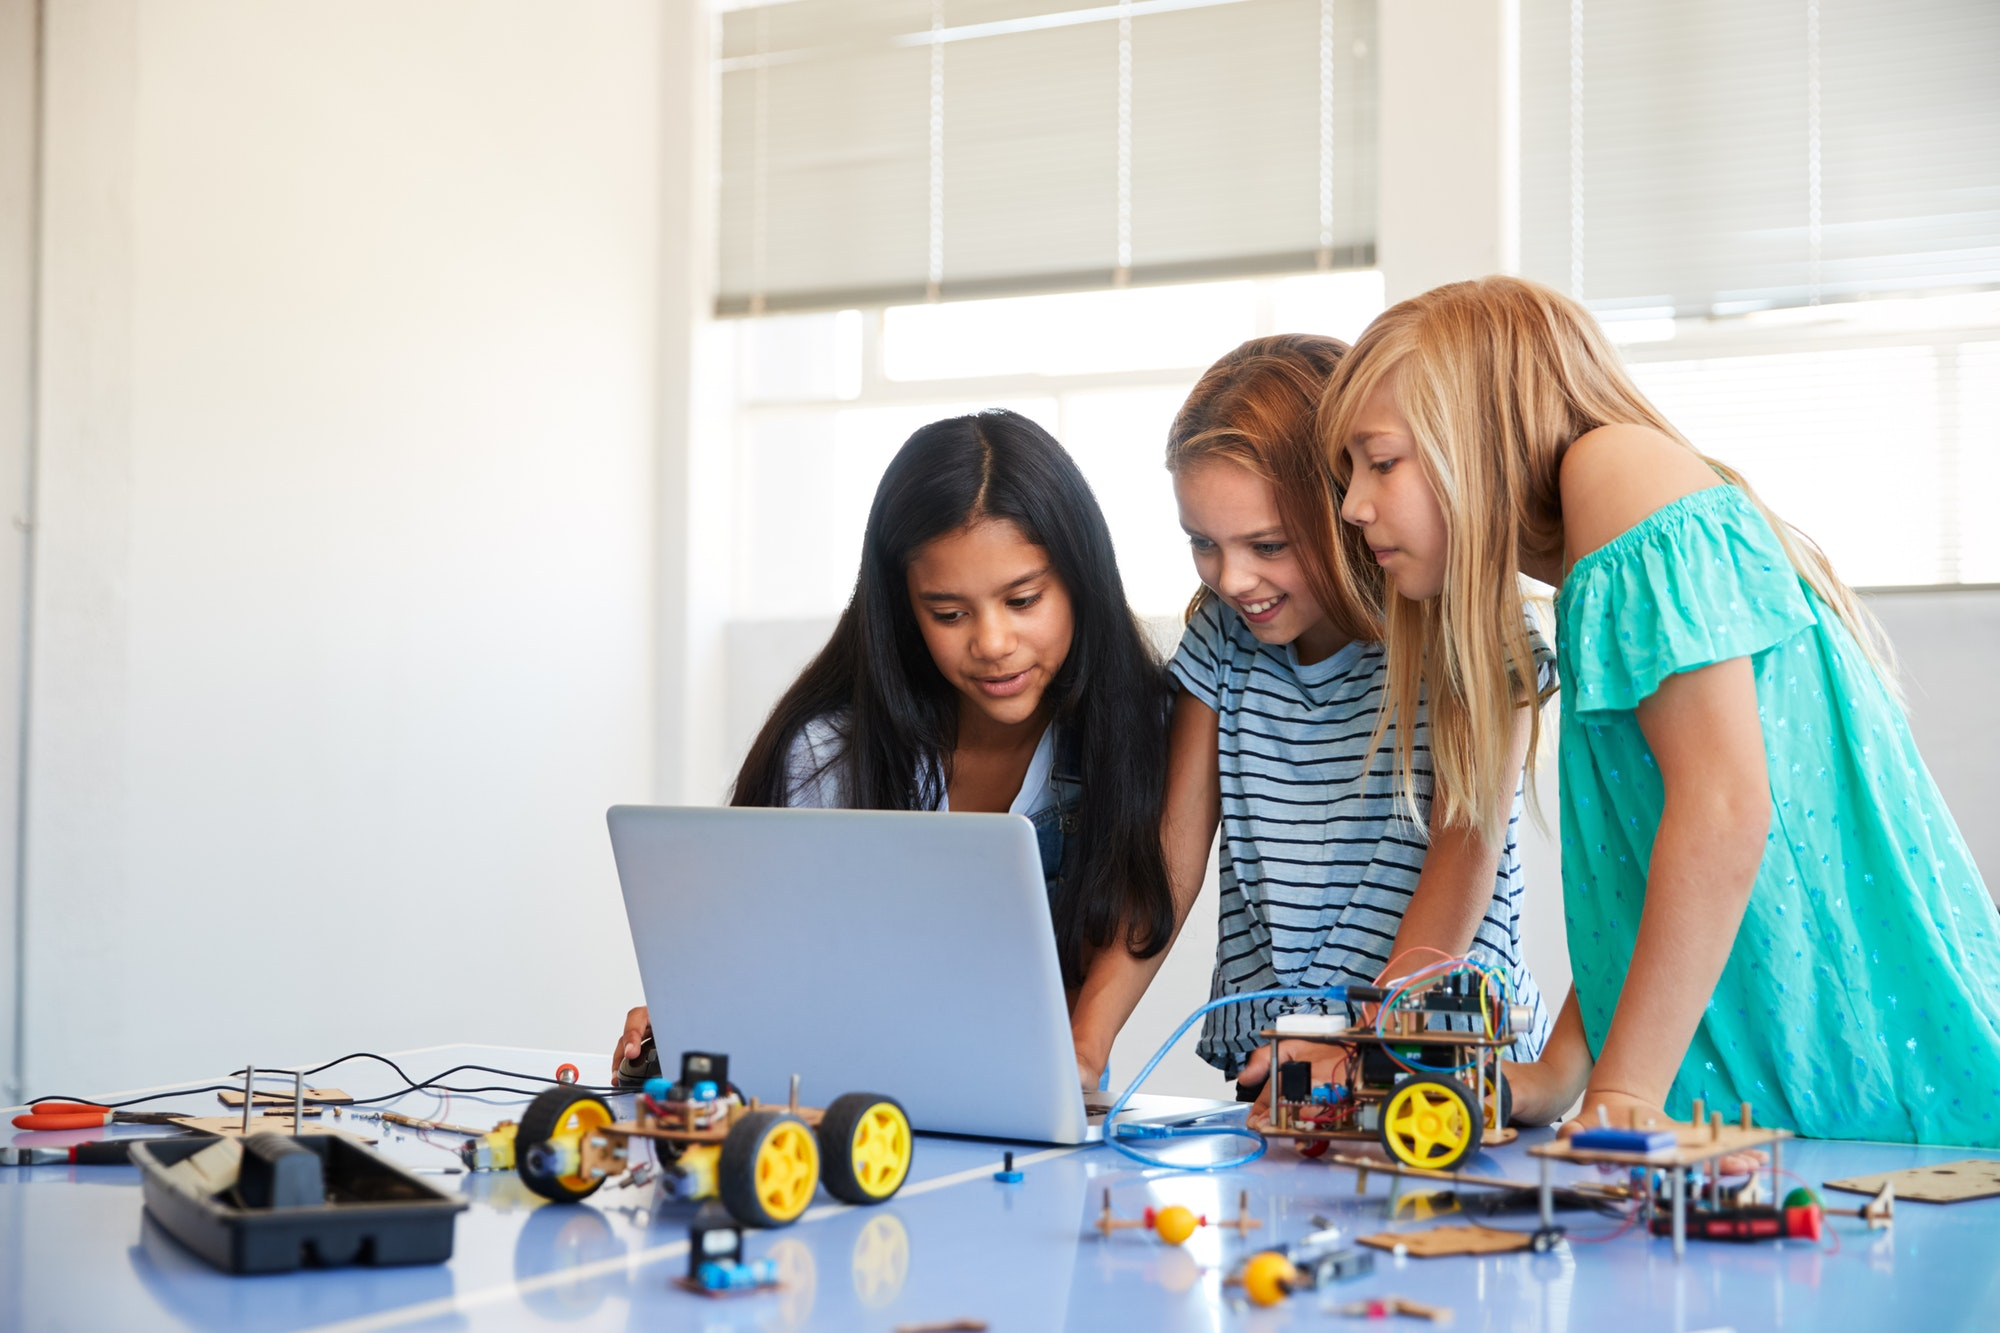 three-female-students-building-and-programing-robot-vehicle-in-after-school-computer-coding-class.jpg